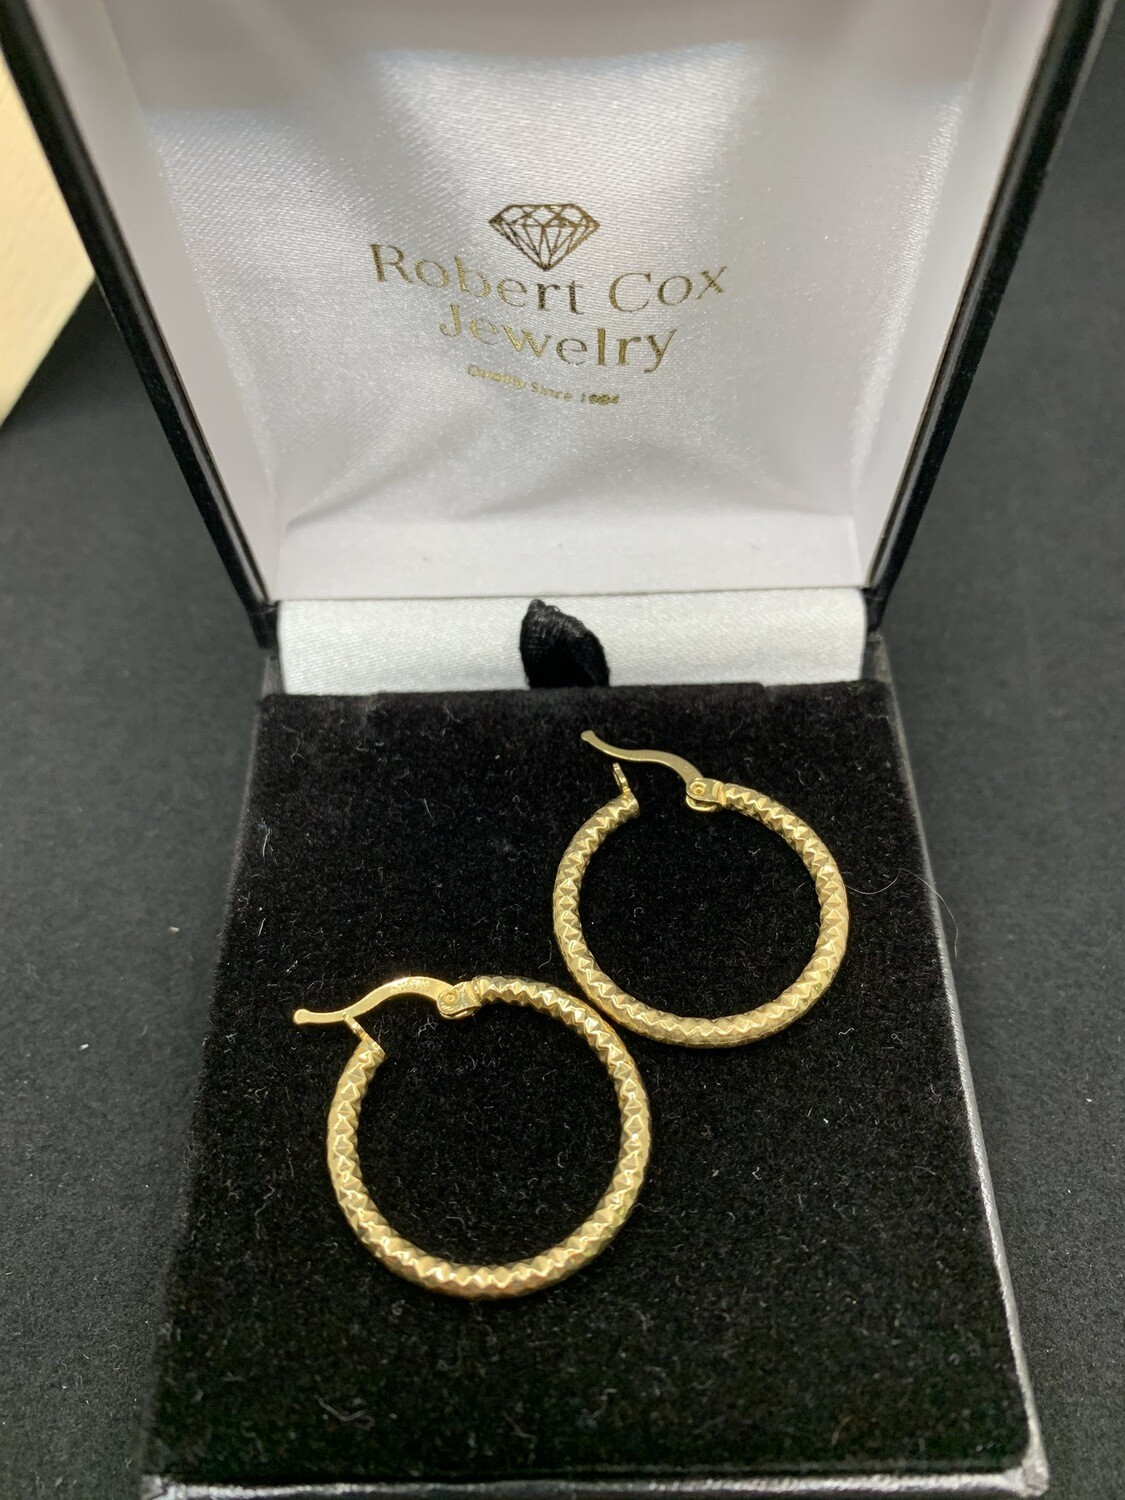 10K Yellow Gold Textured Tube W/ Click Catch 27mm X 25mm